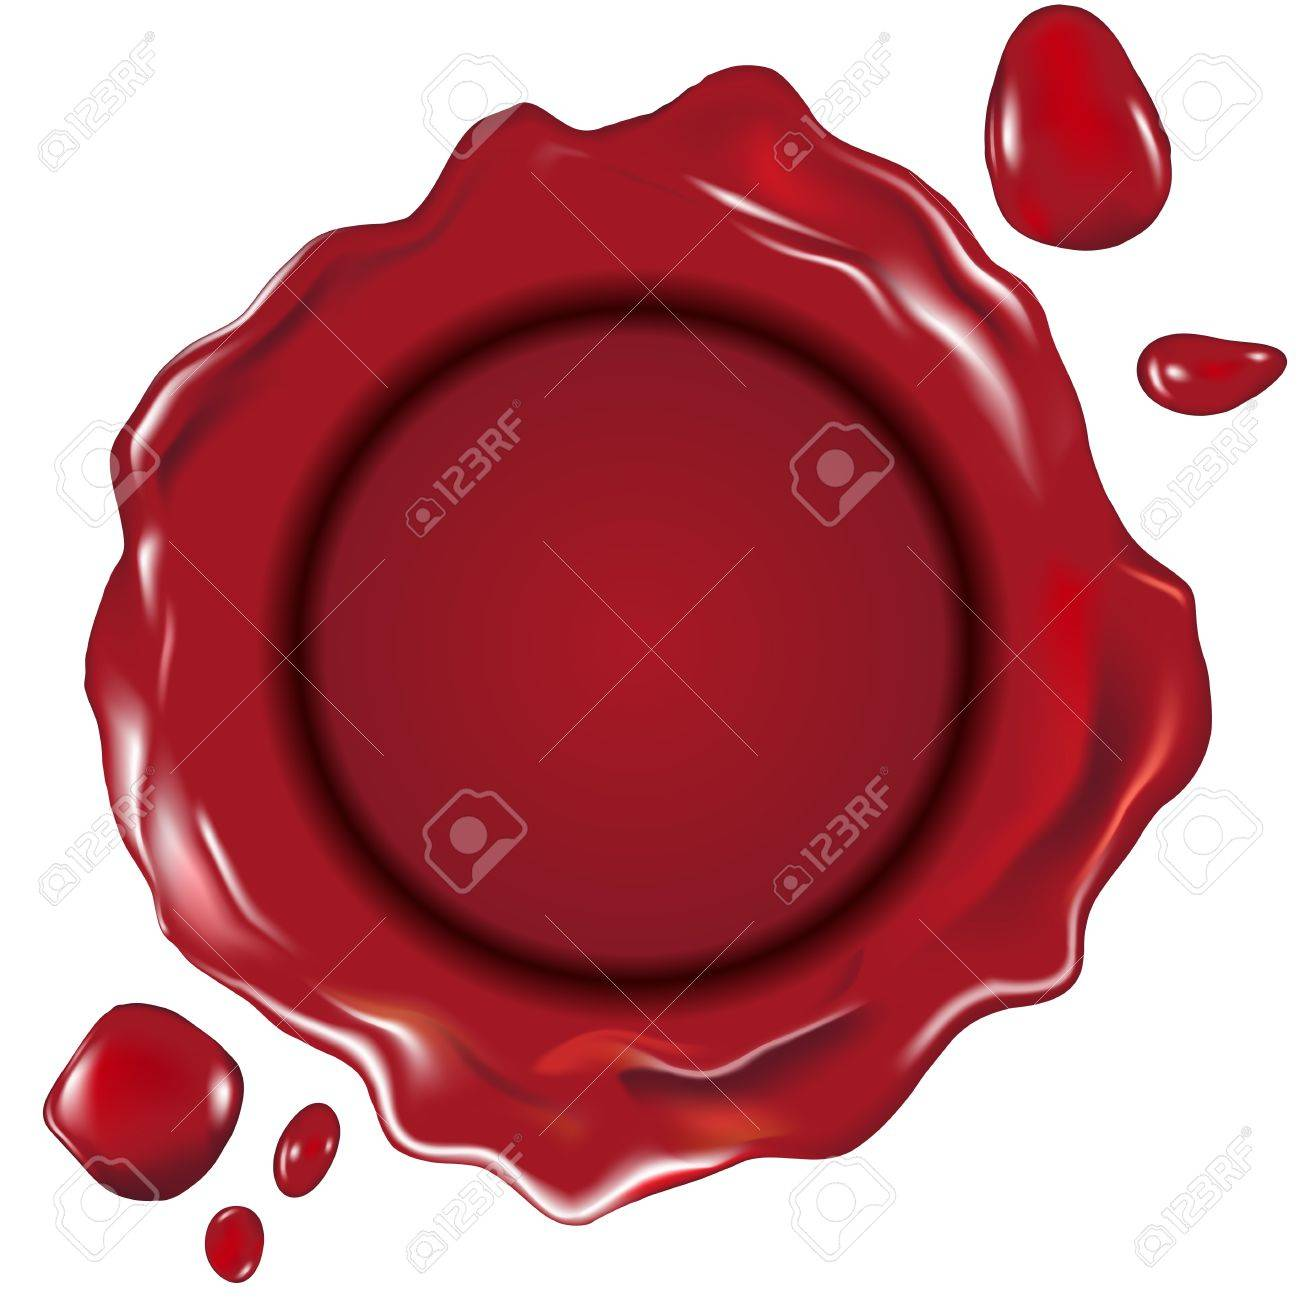 detailed illustration of a red wax seal, gradient mesh included - 17020300